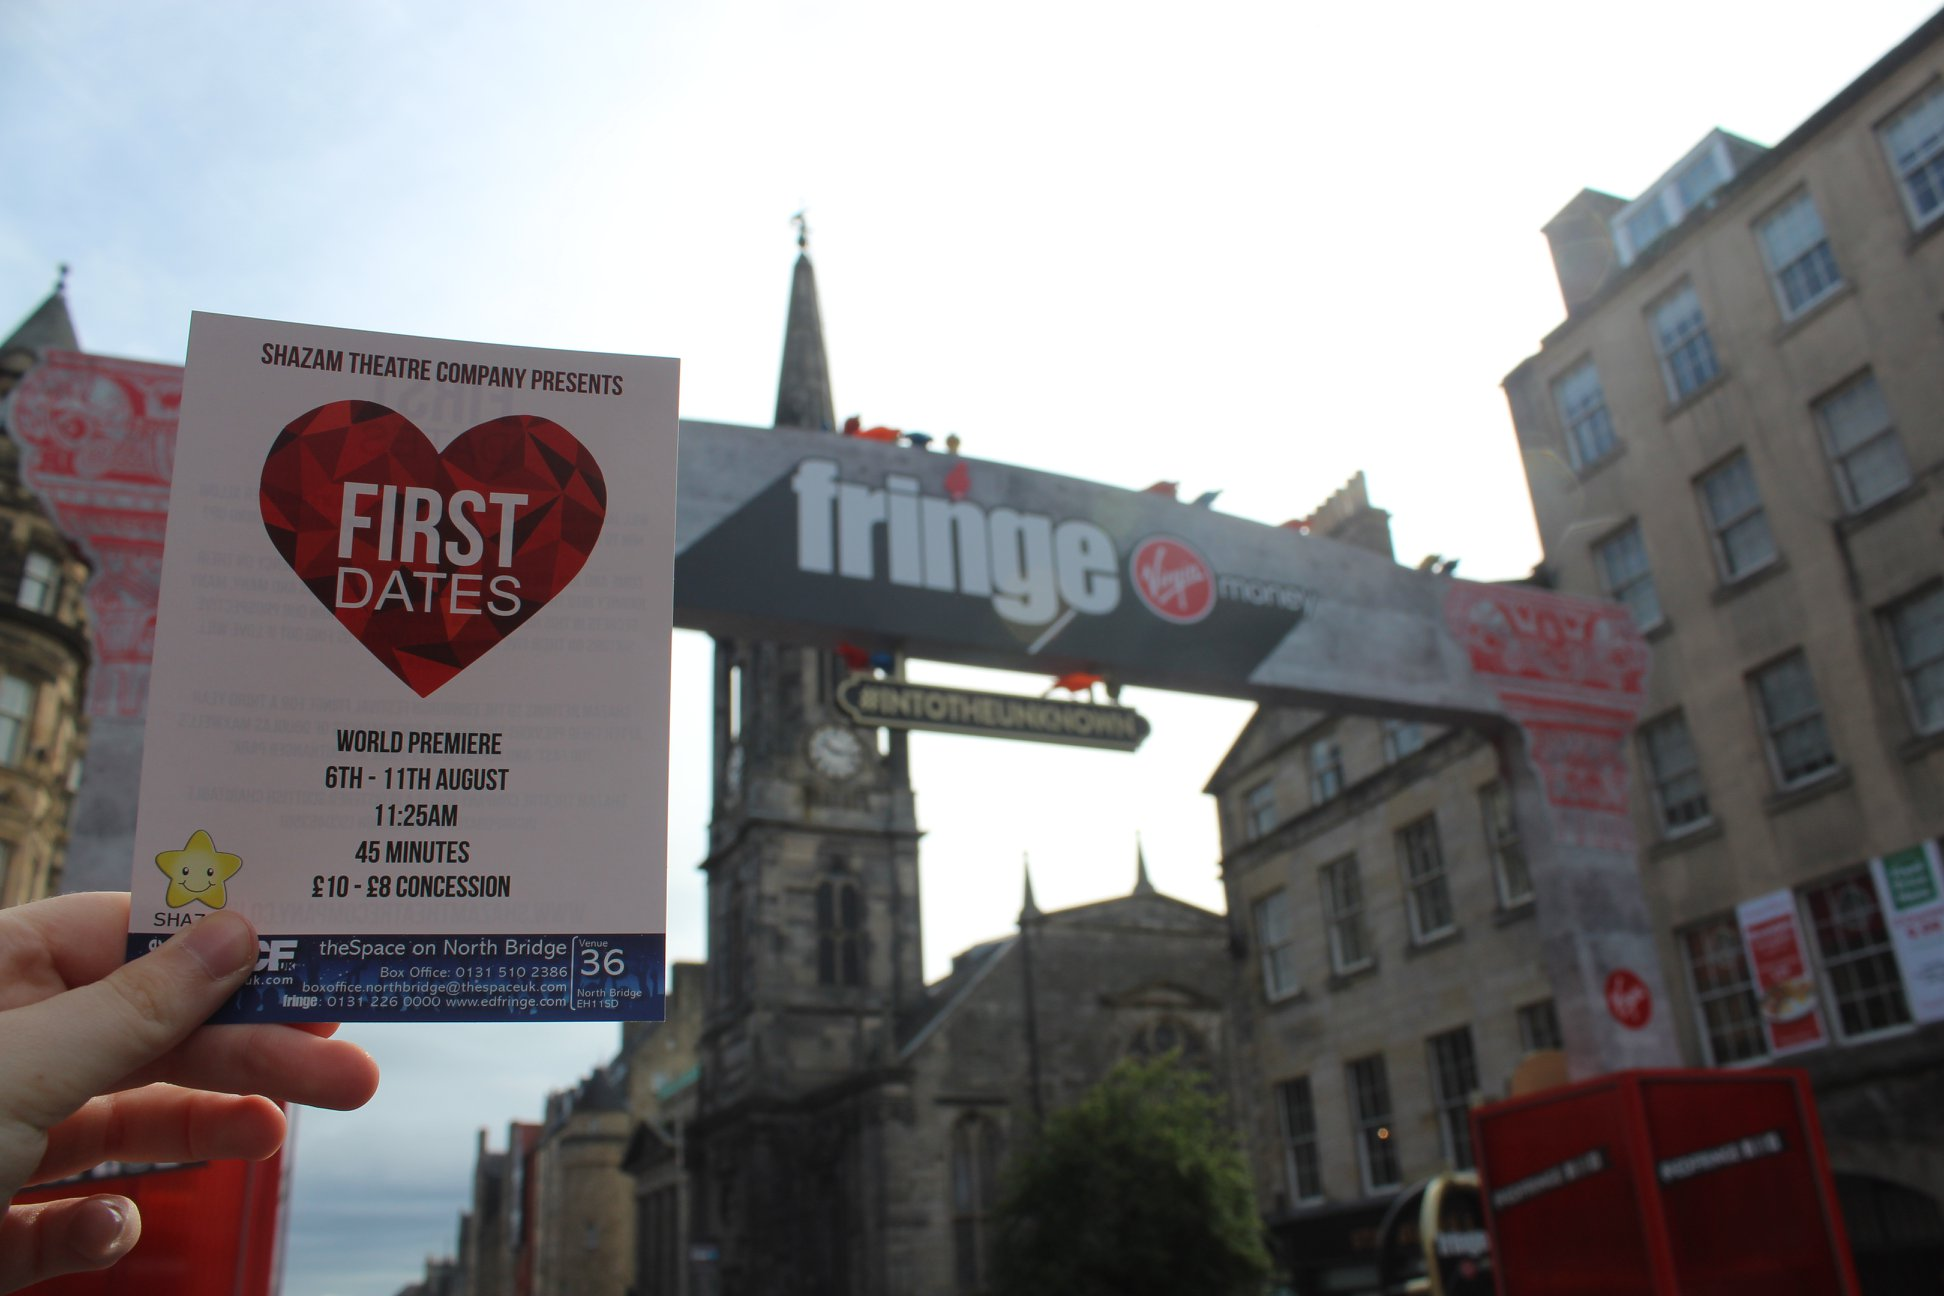 18_08 First Dates 2